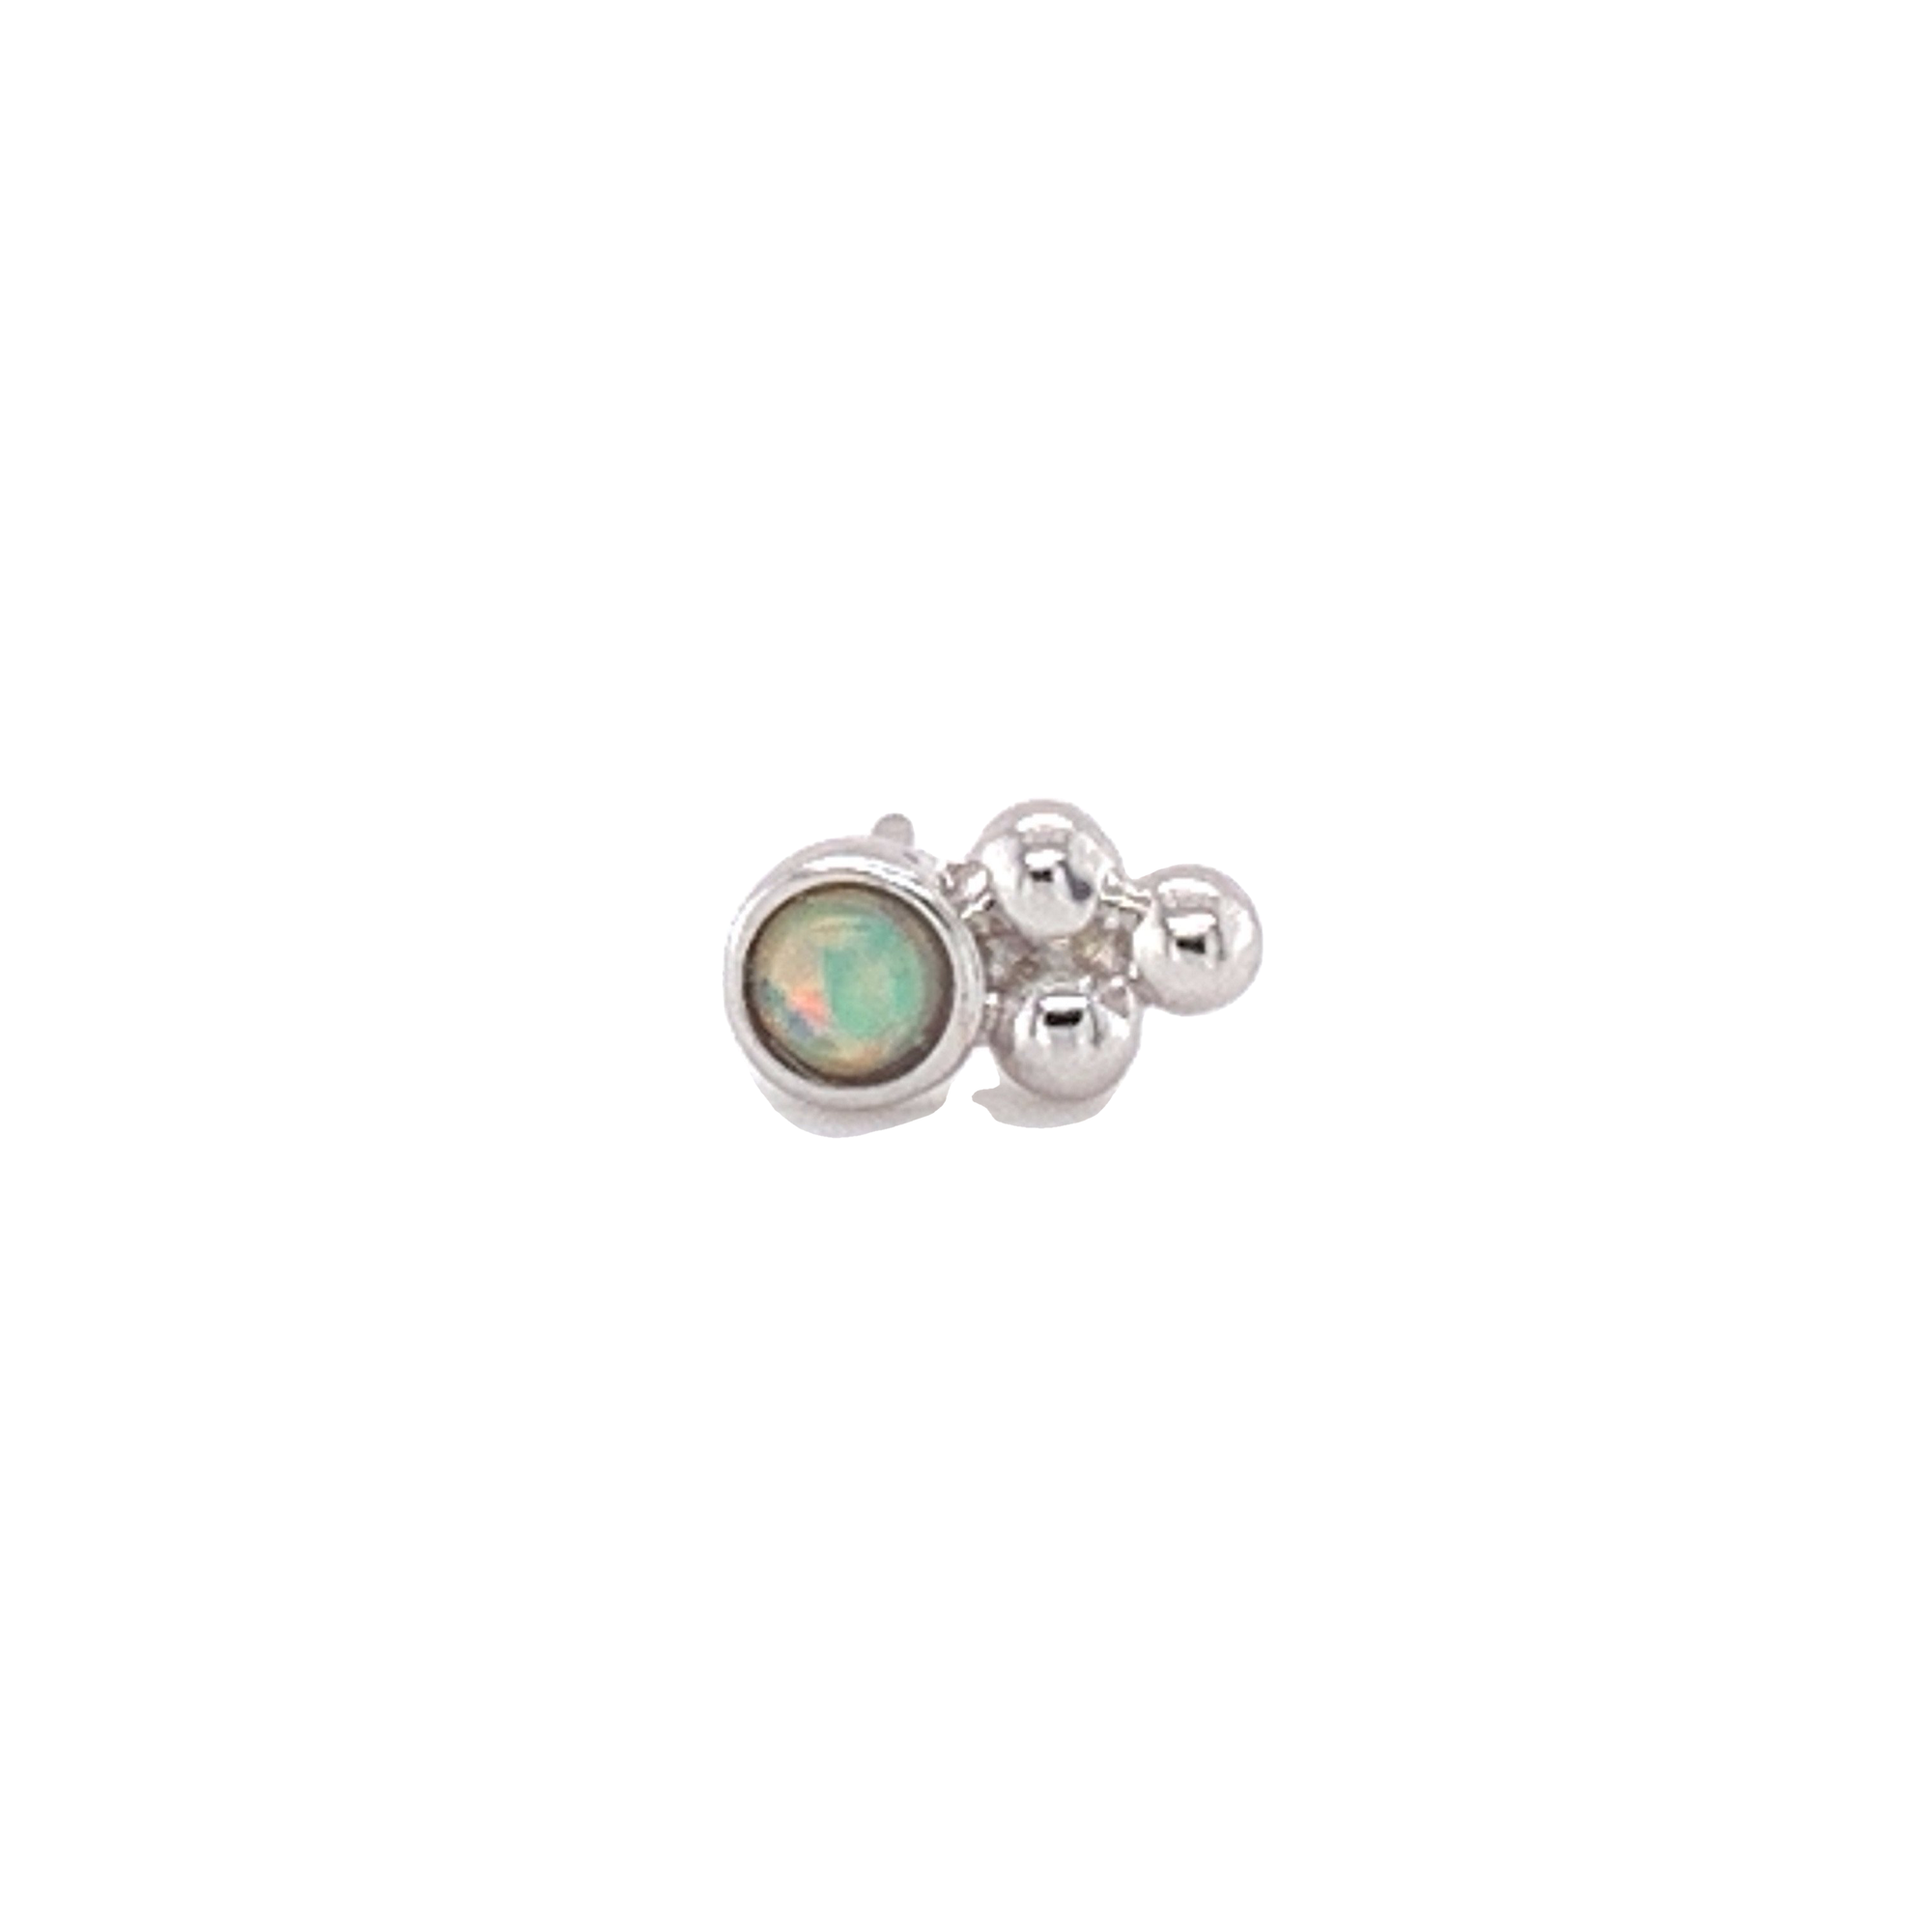 14Ct White Gold Bezel Set Tri-Bead Opal End Attachment